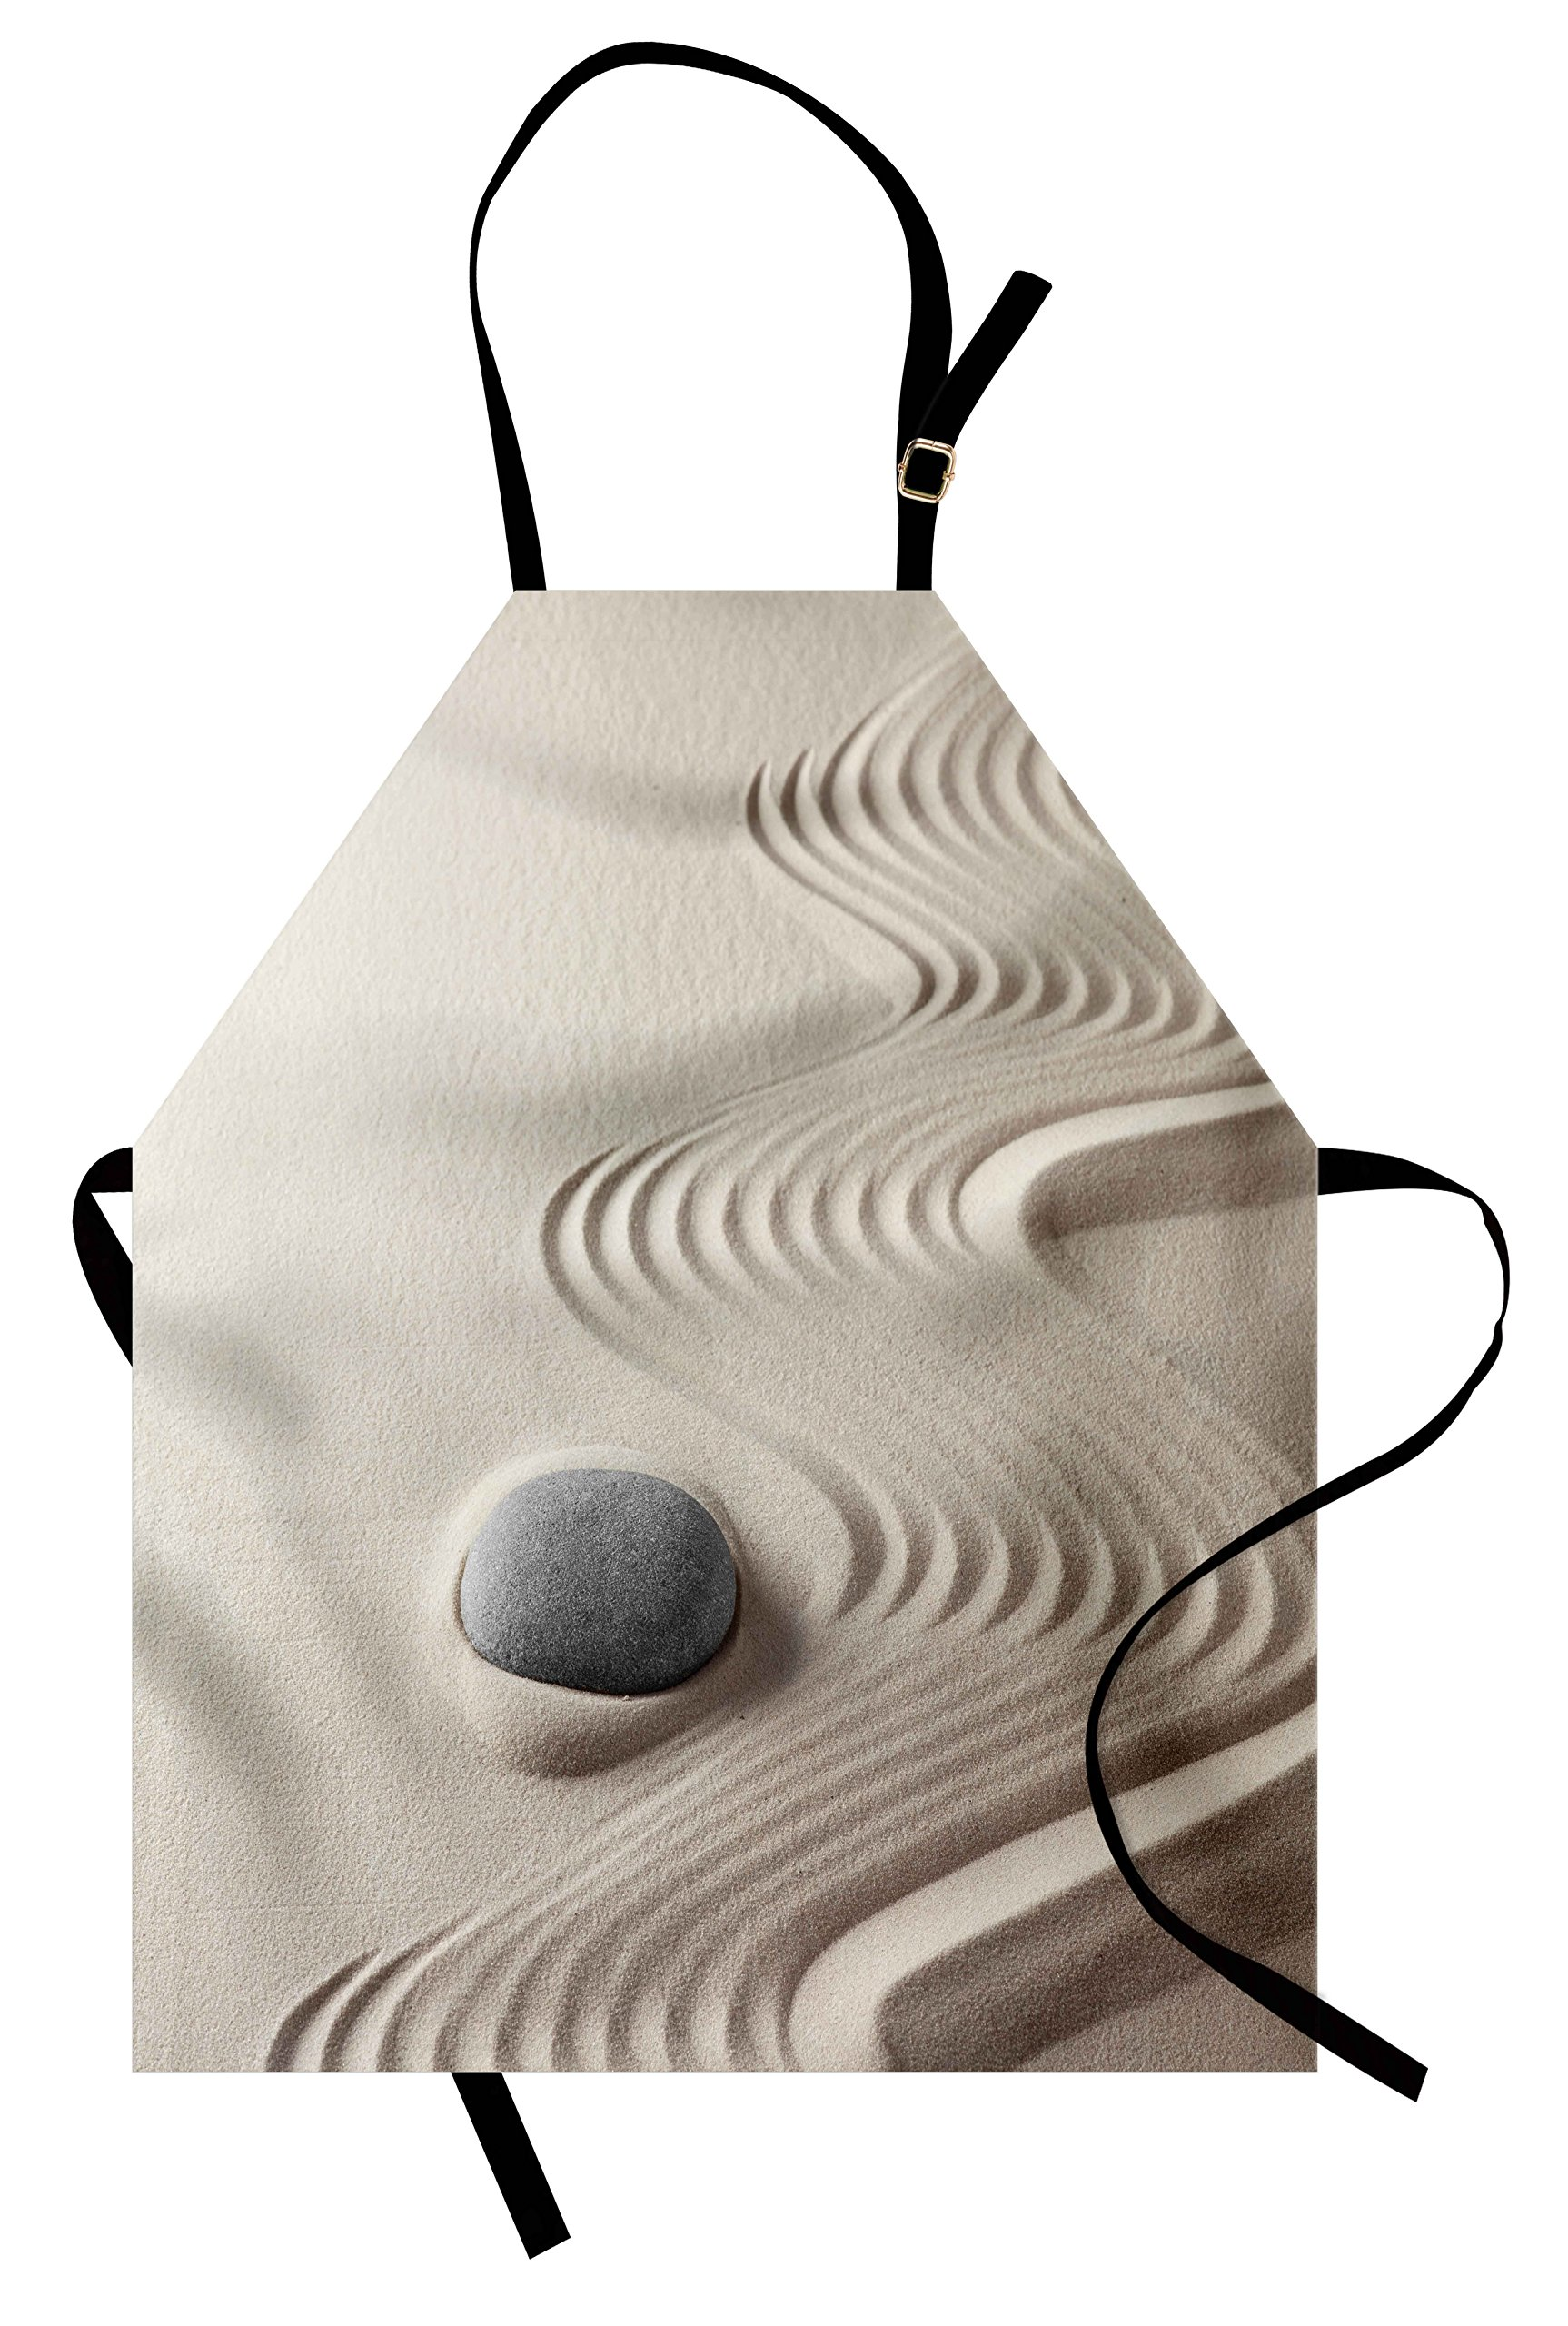 Lunarable Spa Apron, The Caribbean White Sand in Shaped Like Waves Near a Grey Zen Stones Work of Art, Unisex Kitchen Bib Apron with Adjustable Neck for Cooking Baking Gardening, Beige and Grey